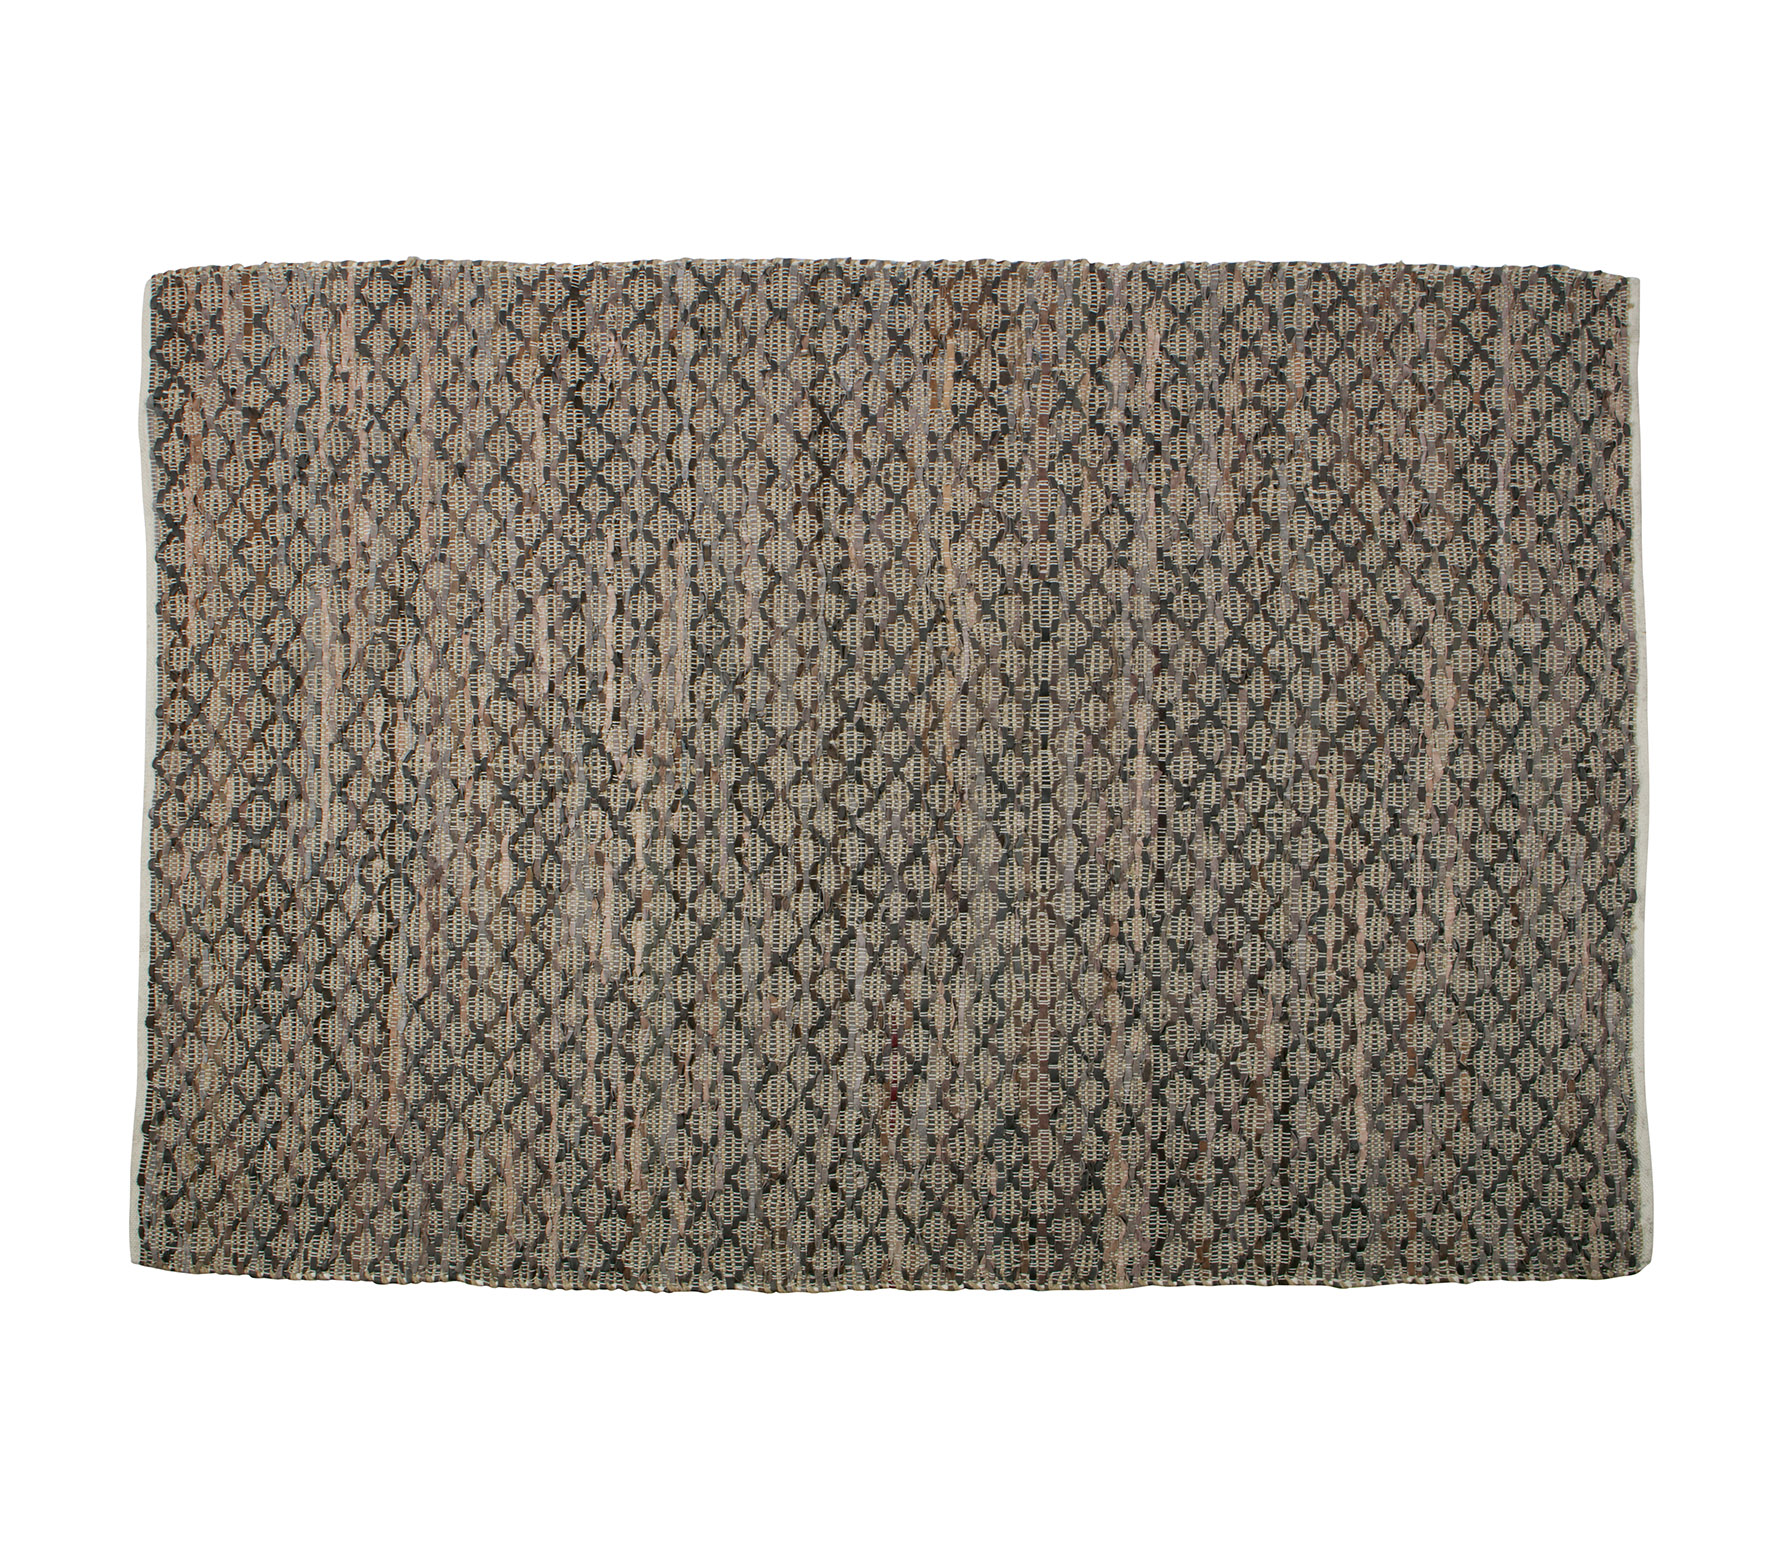 BePureHome Twined vloerkleed jute/leer naturel VS 01